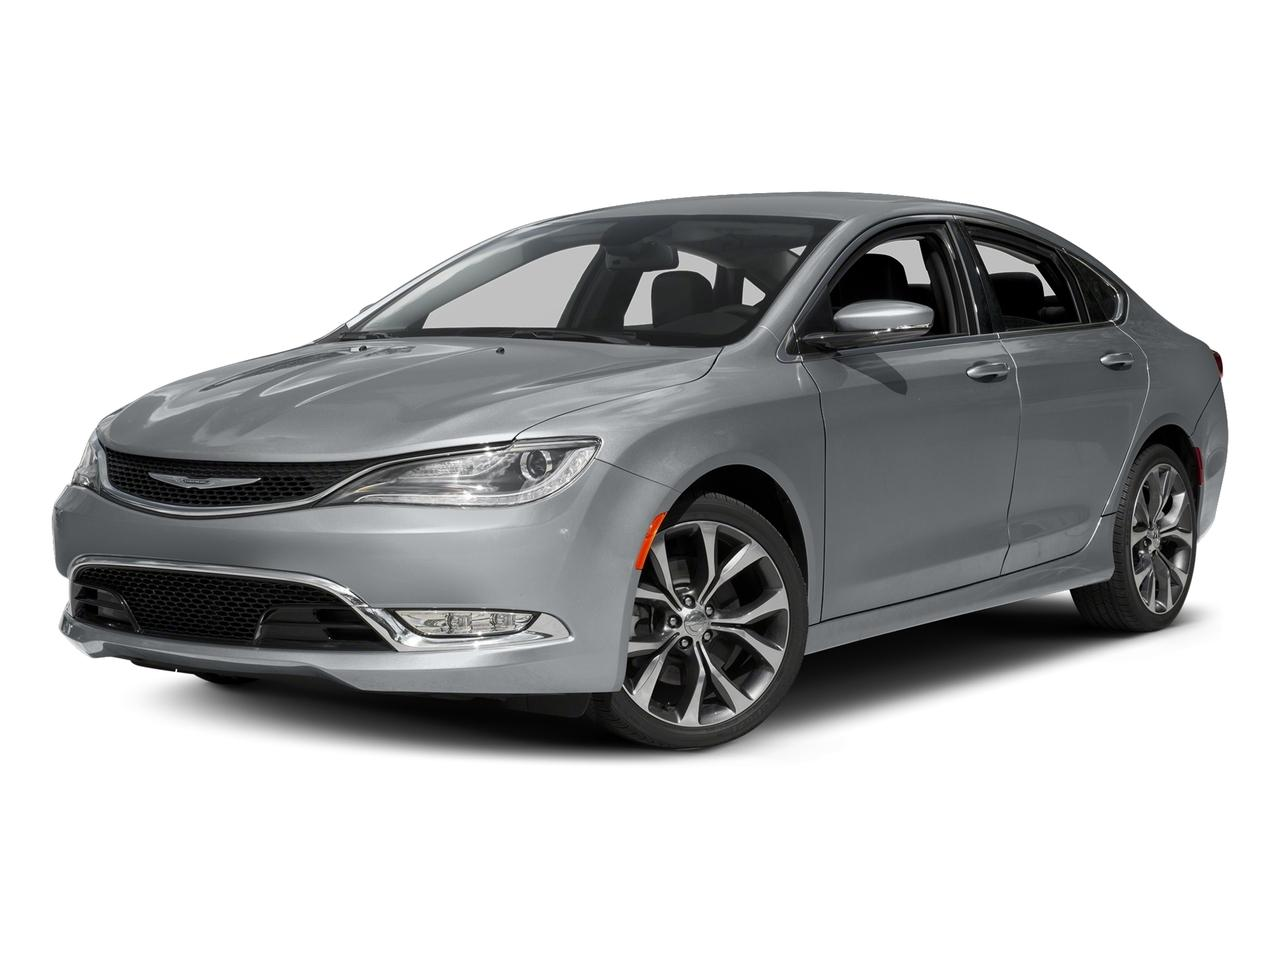 2016 Chrysler 200 Vehicle Photo in Fort Worth, TX 76116